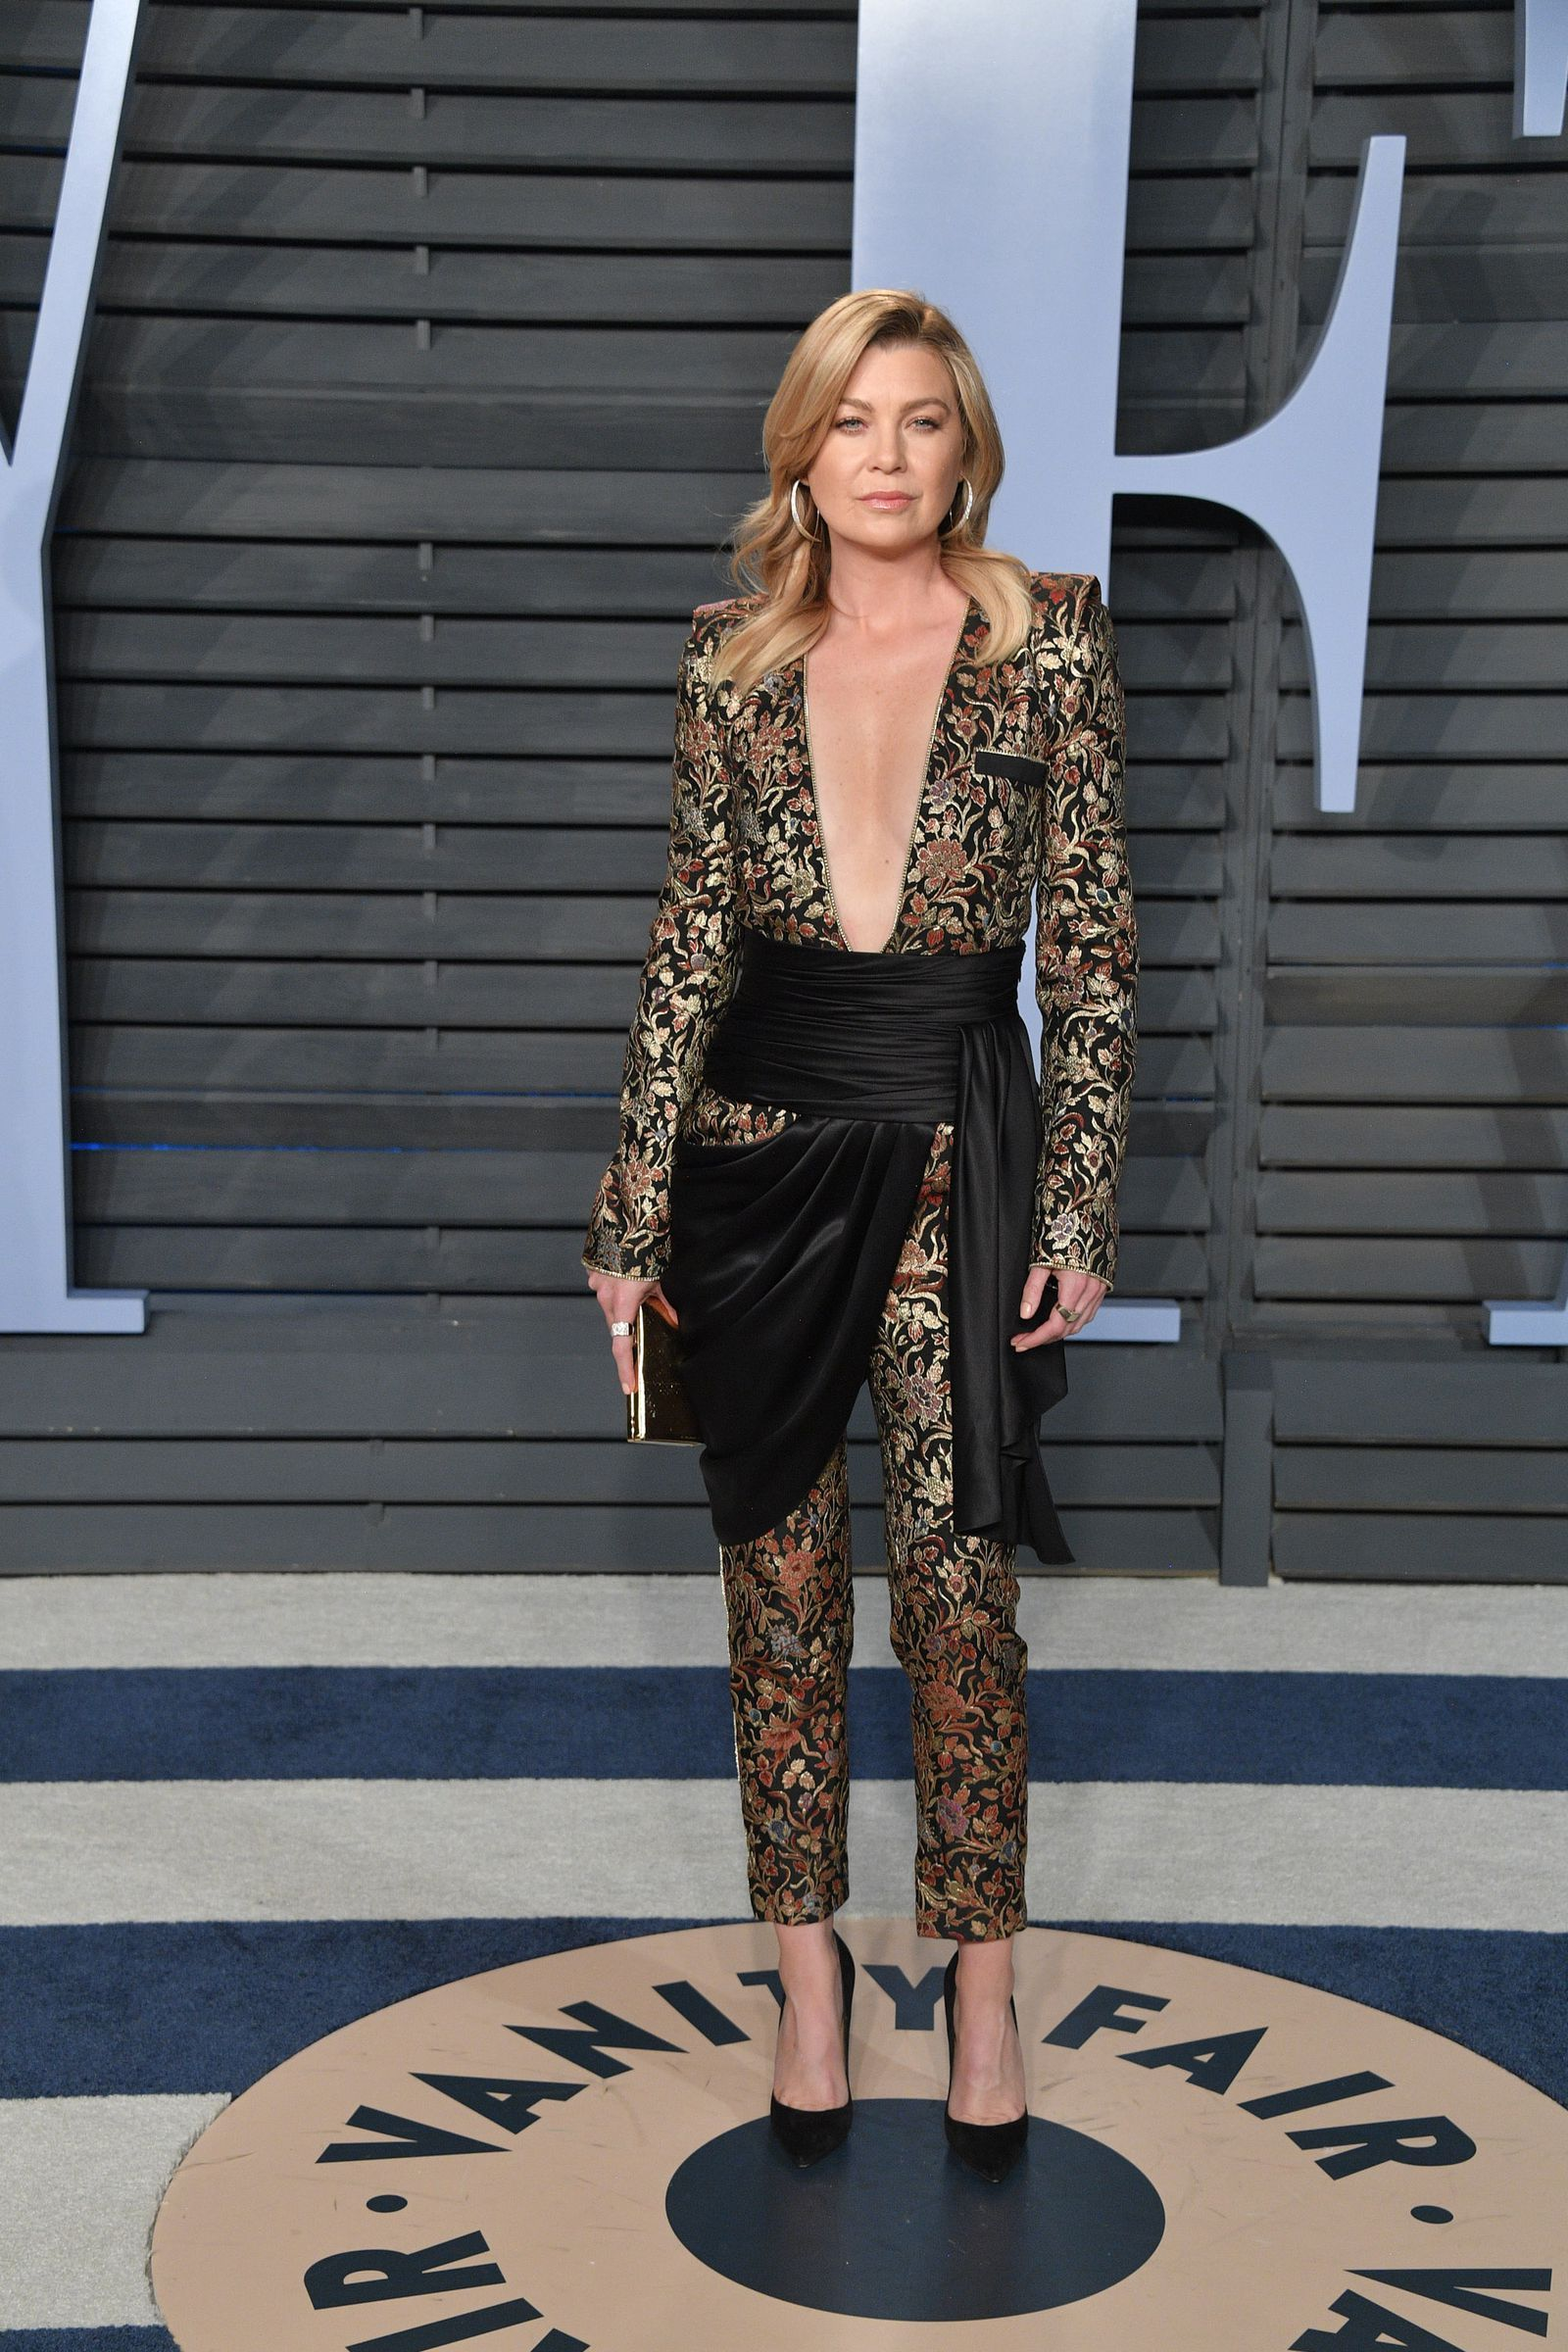 The Most Scandalous Dresses On The Oscars Red Carpet Magazine